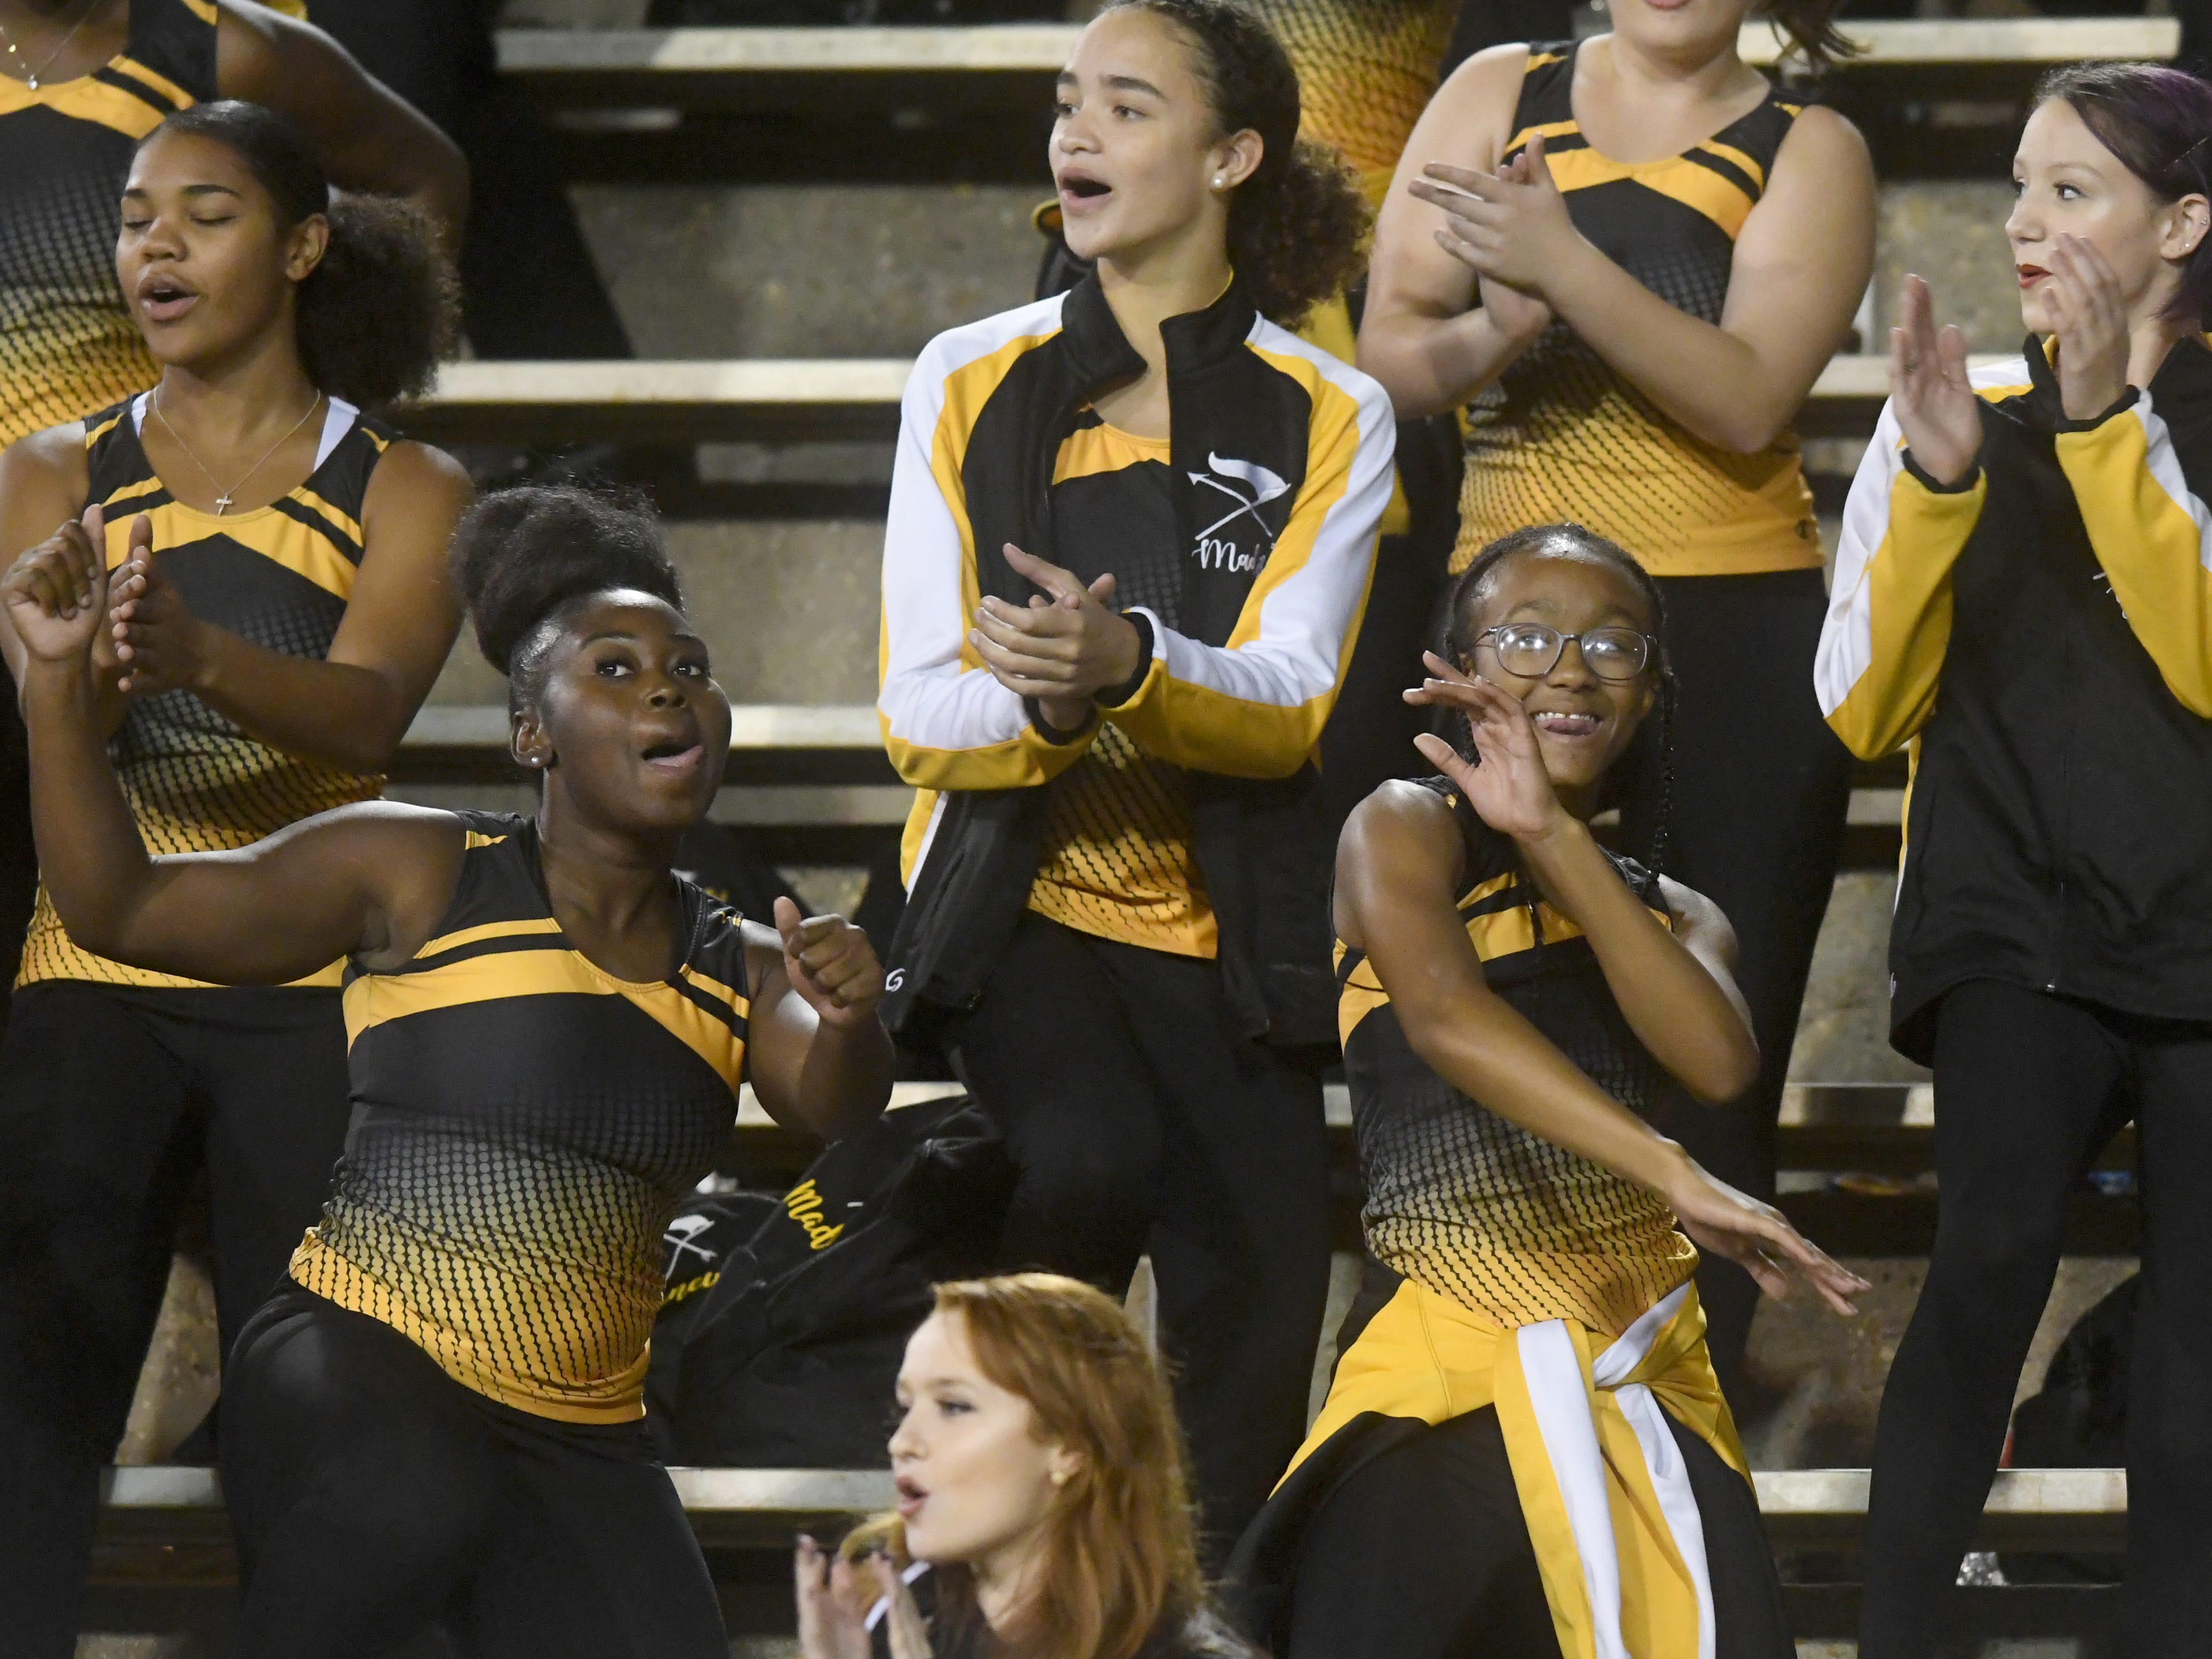 Oak Grove dance members perform during the 6A state championship game against Horn Lake at M.M. Roberts Stadium in Hattiesburg on Friday, November 30, 2018.